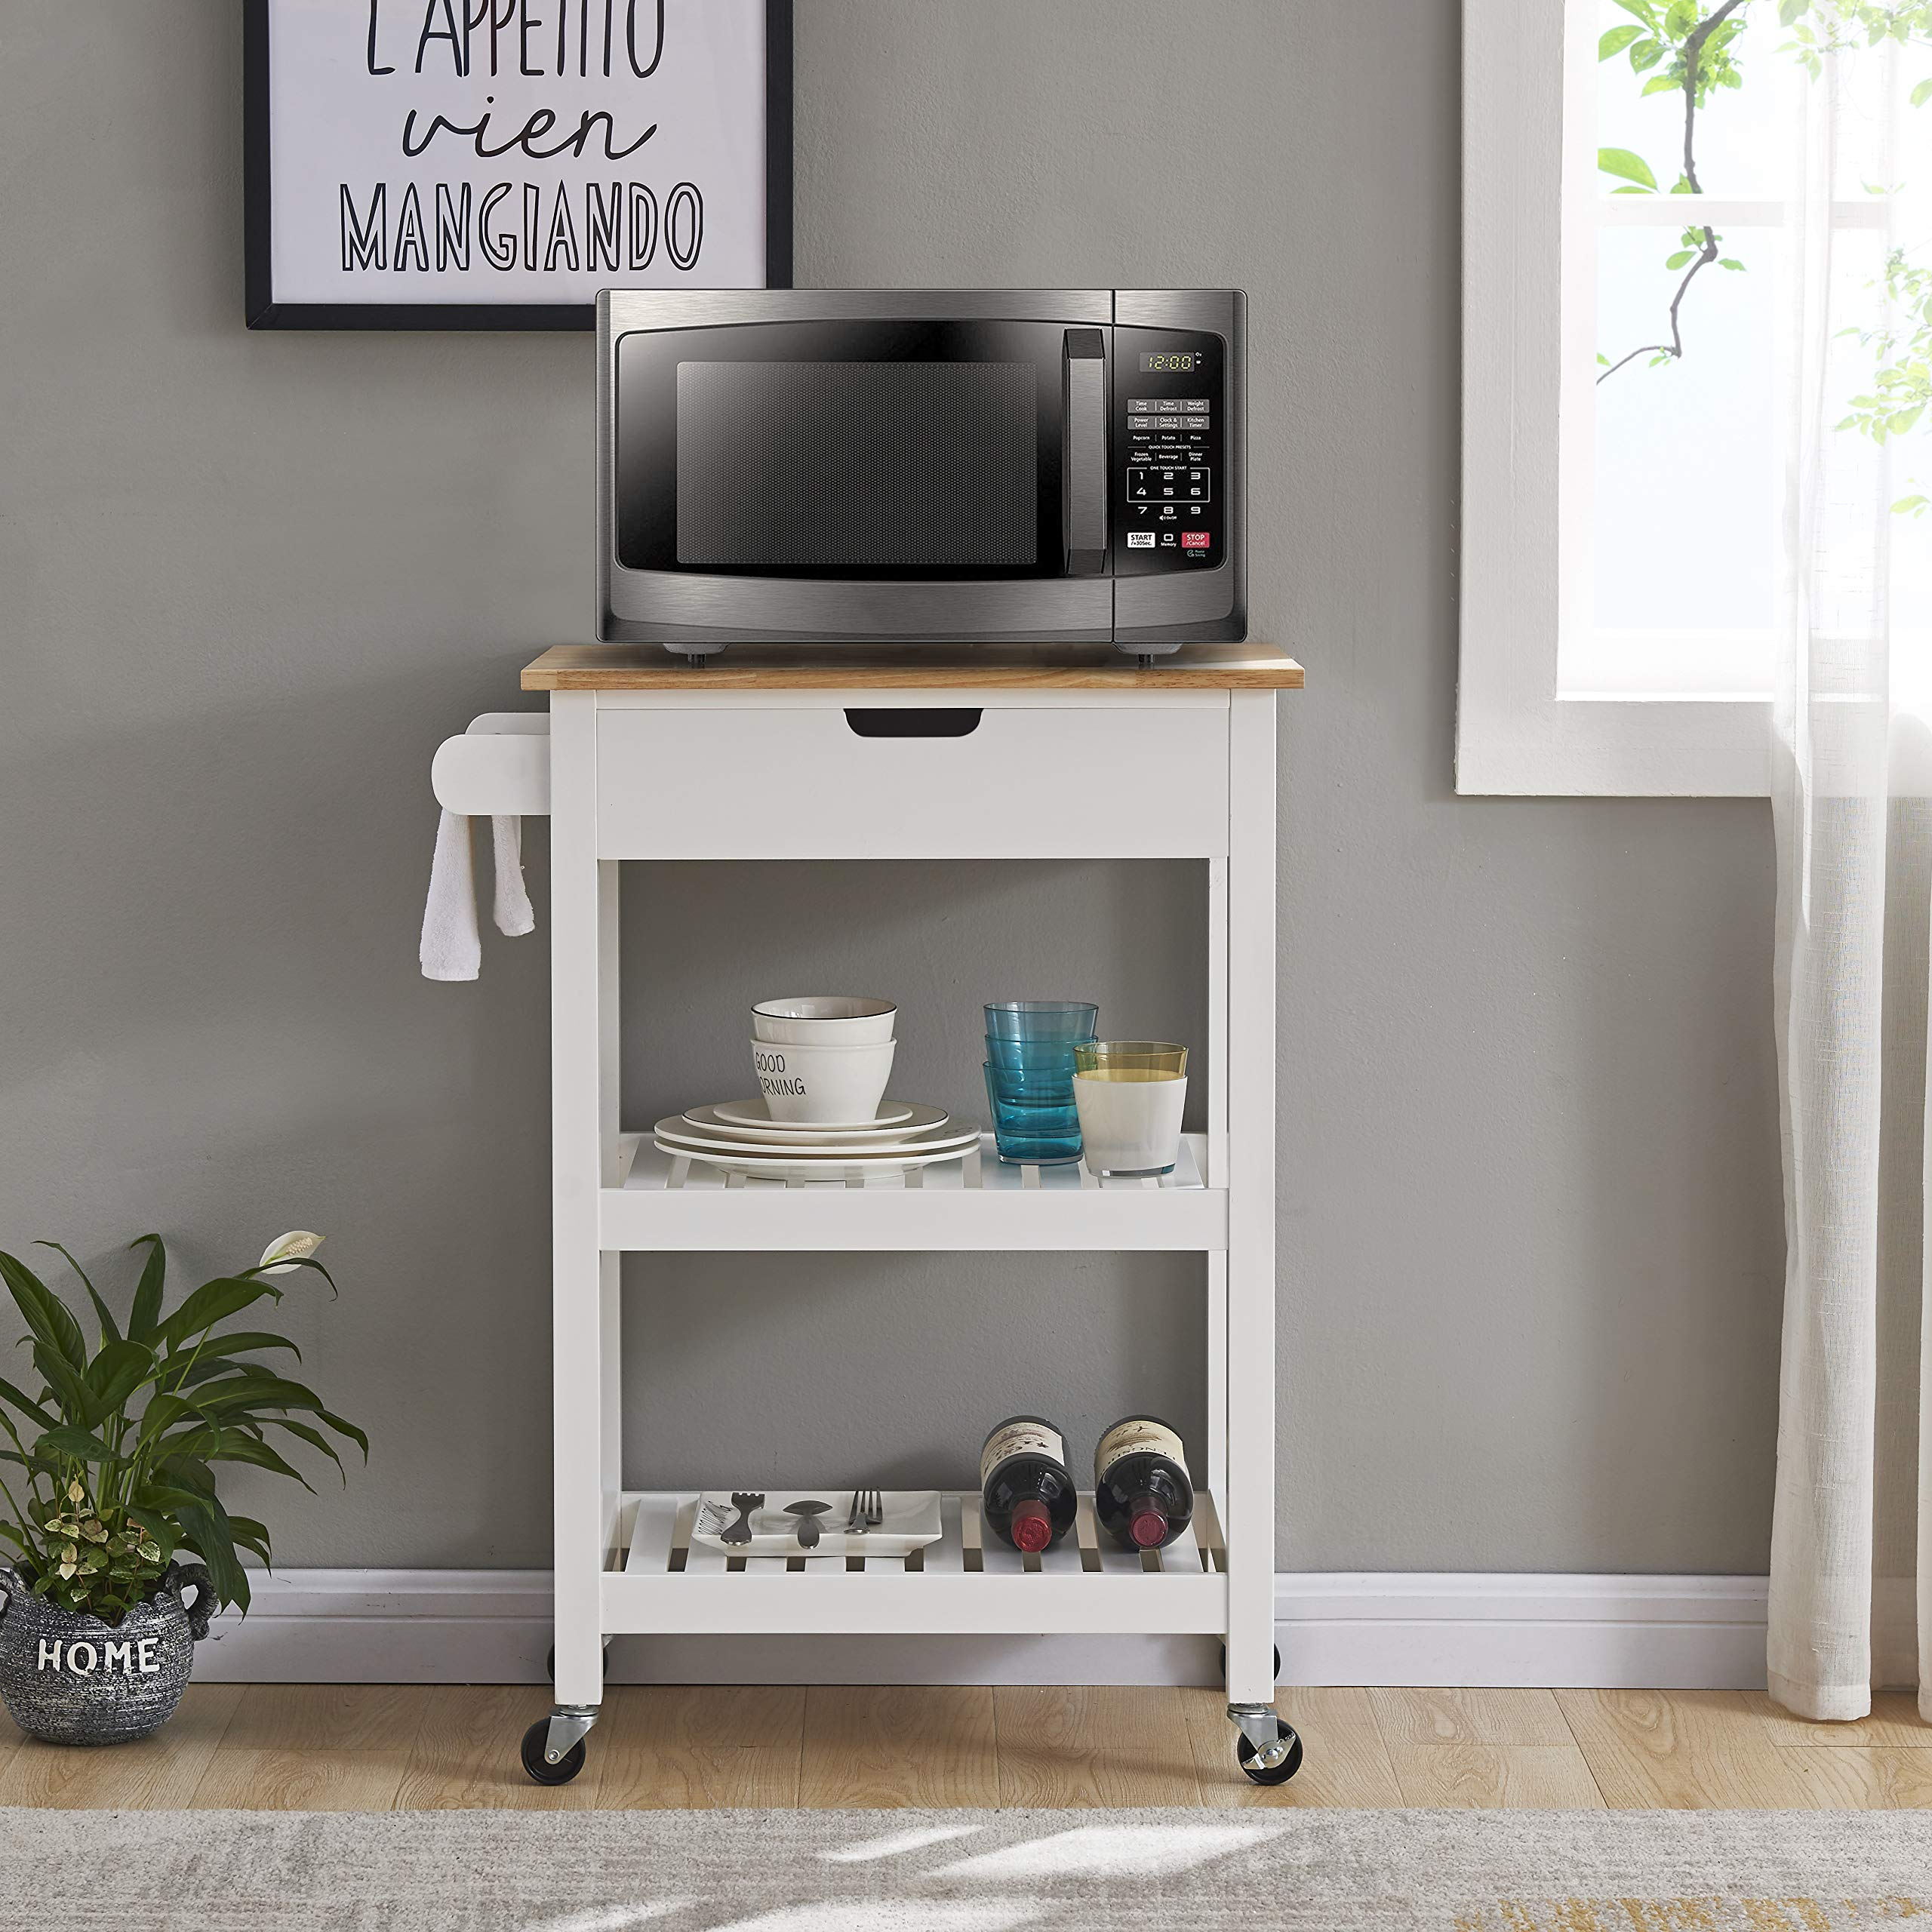 Coniffer Rolling Kitchen Cart Microwave Storage Island with Wheels White for Dining Rooms Kitchens and Living Rooms by Coniffer